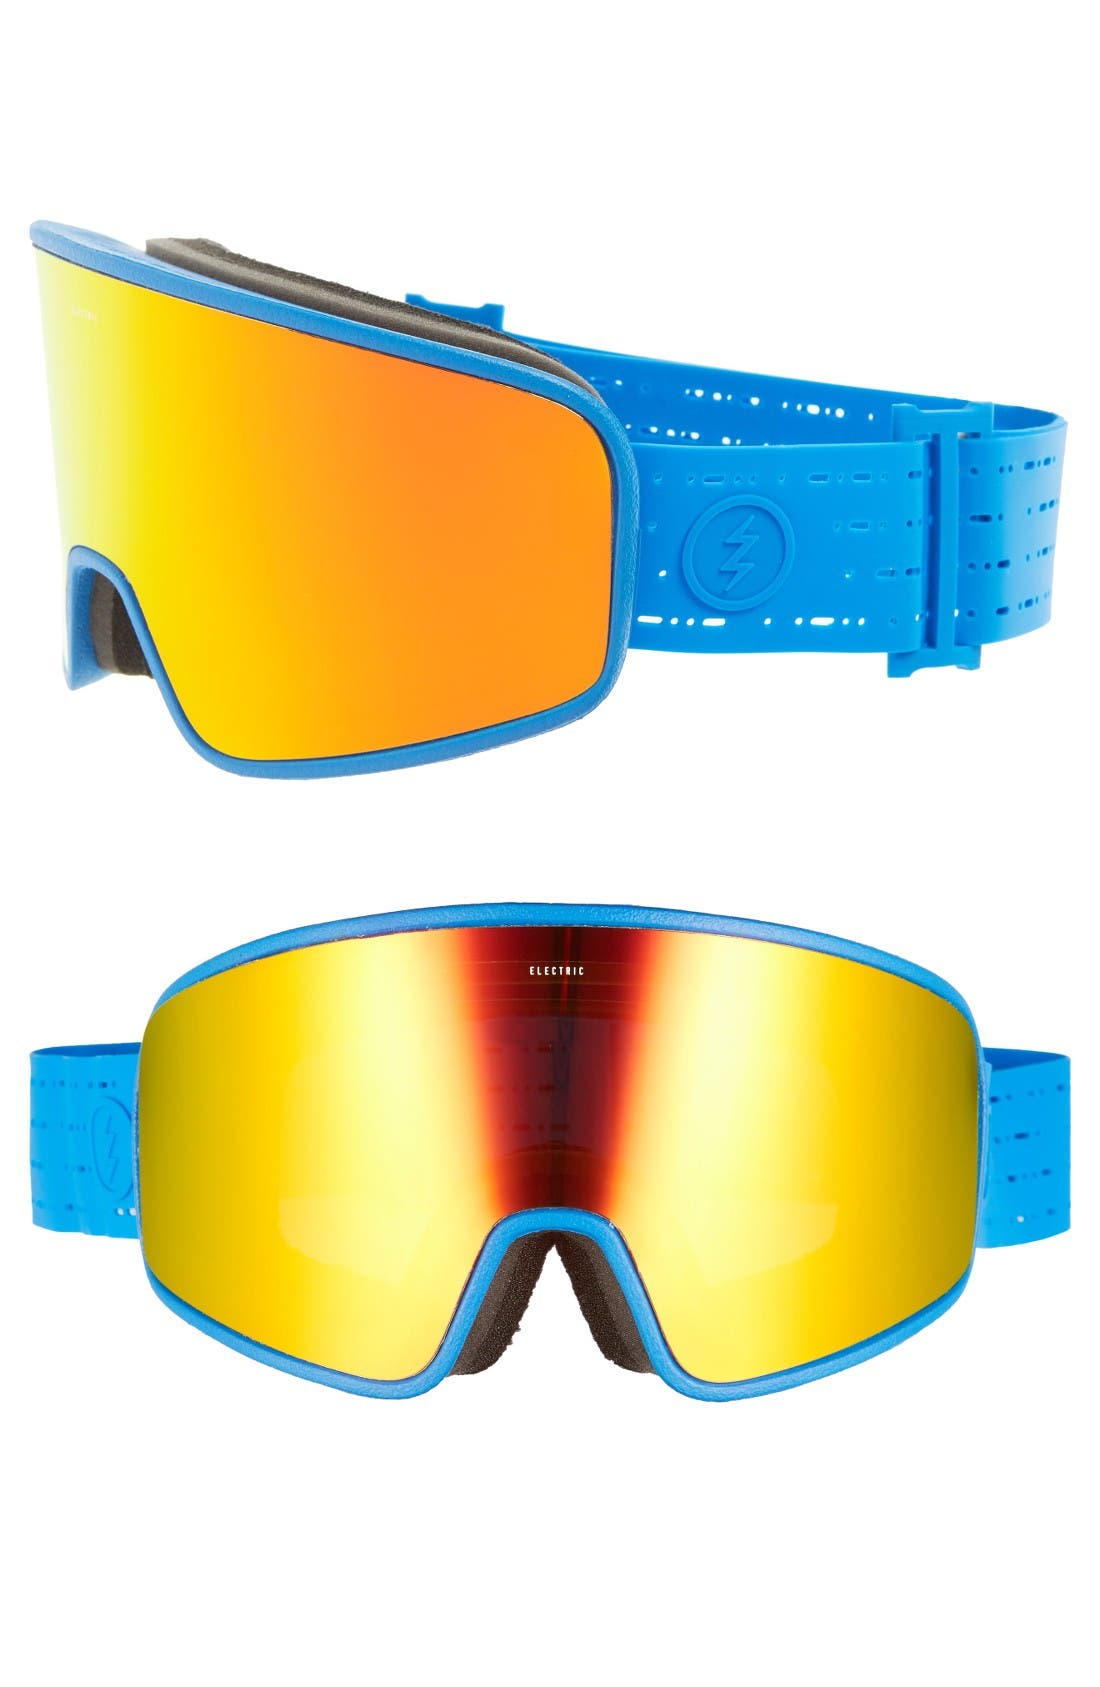 Alternate Image 1 Selected - ELECTRIC Electrolite 215mm Snow Goggles